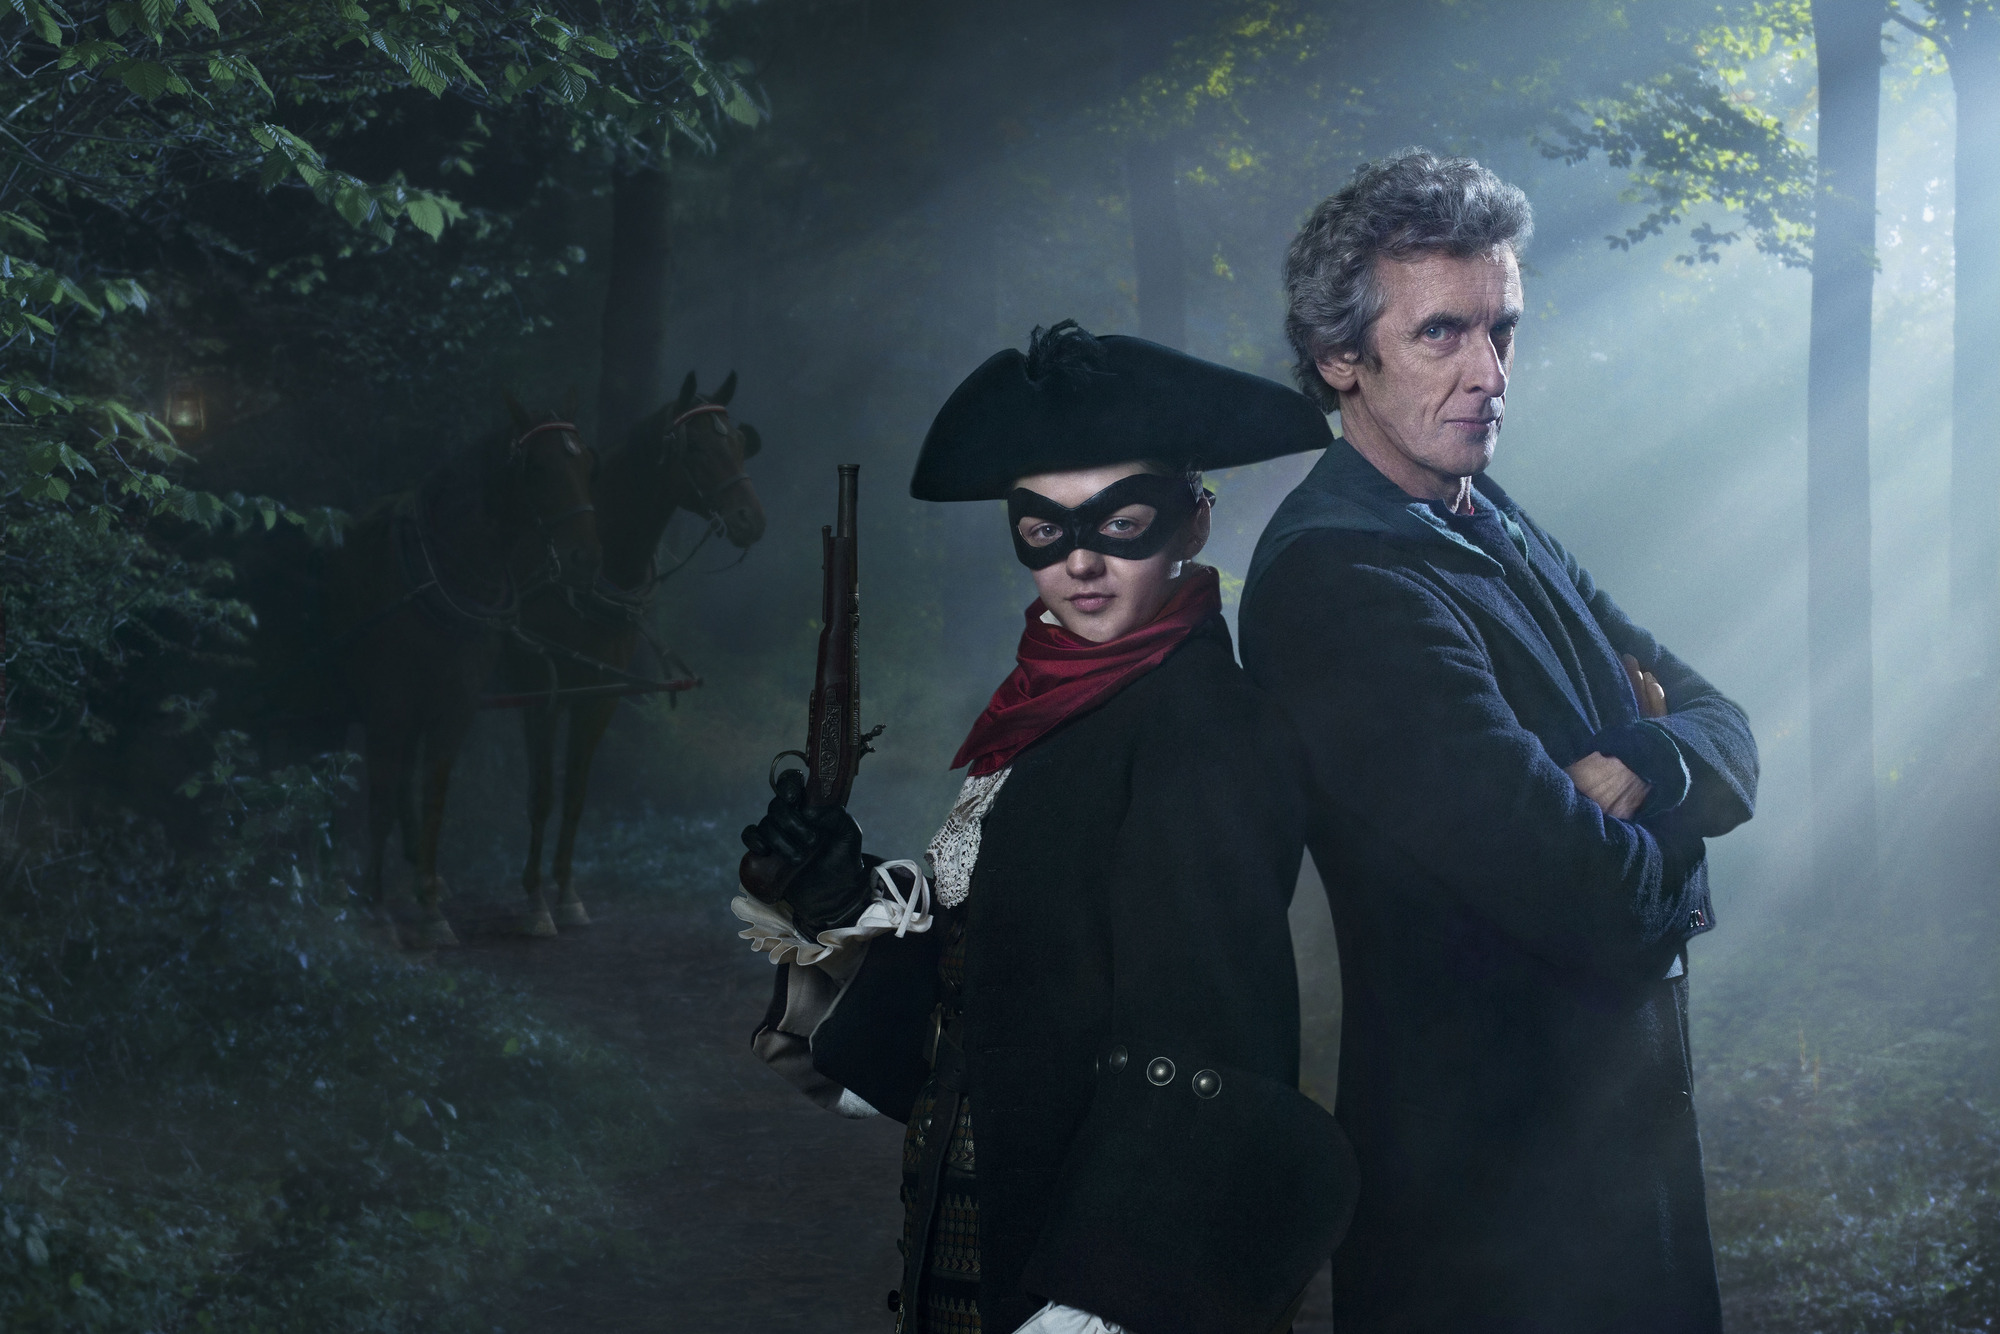 Doctor Who, series 9, The Woman Who Lived, starring Maisie Williams and Peter Capaldi